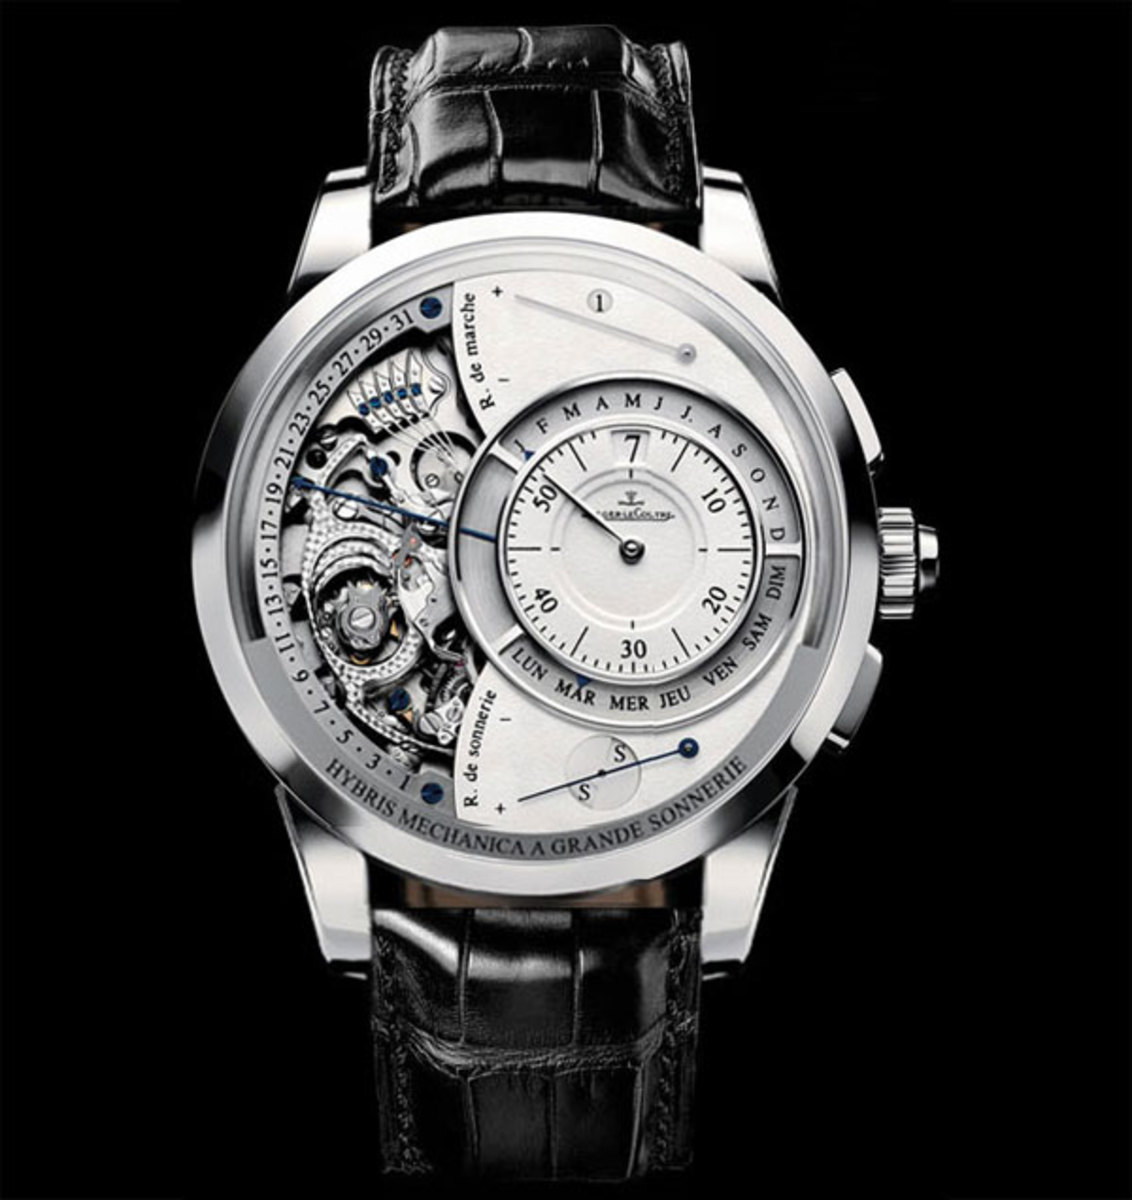 Most Complicated Watch in the World